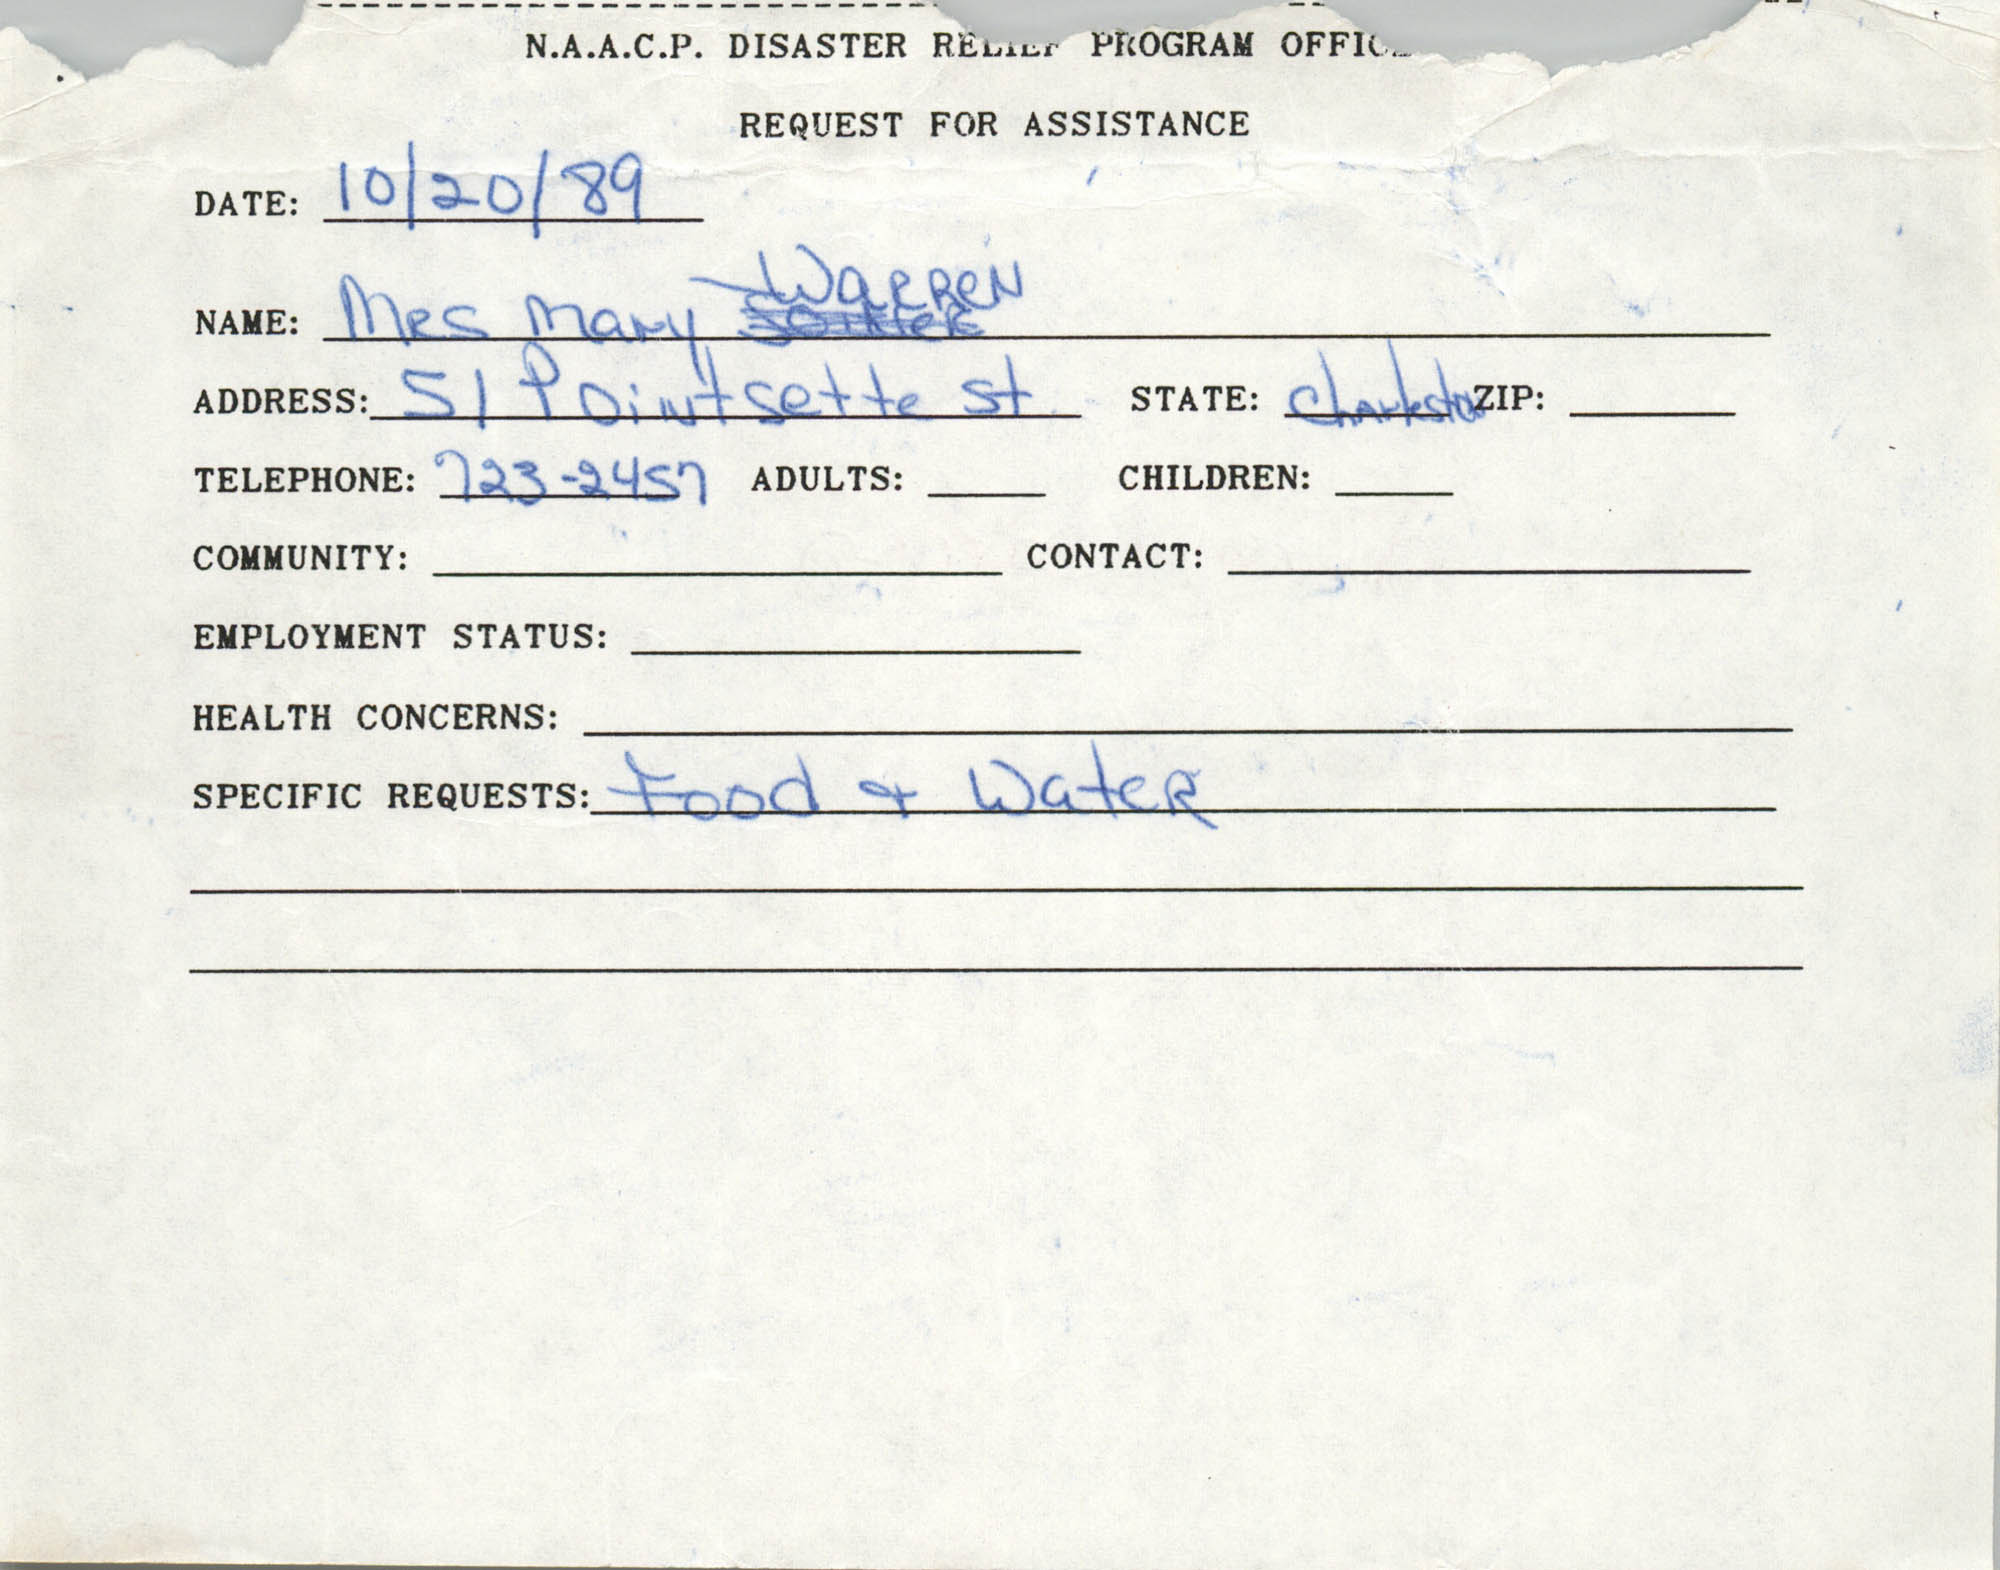 NAACP Disaster Relief Program Office, Hurricane Huge Requests for Assistance, 1989, Page 40